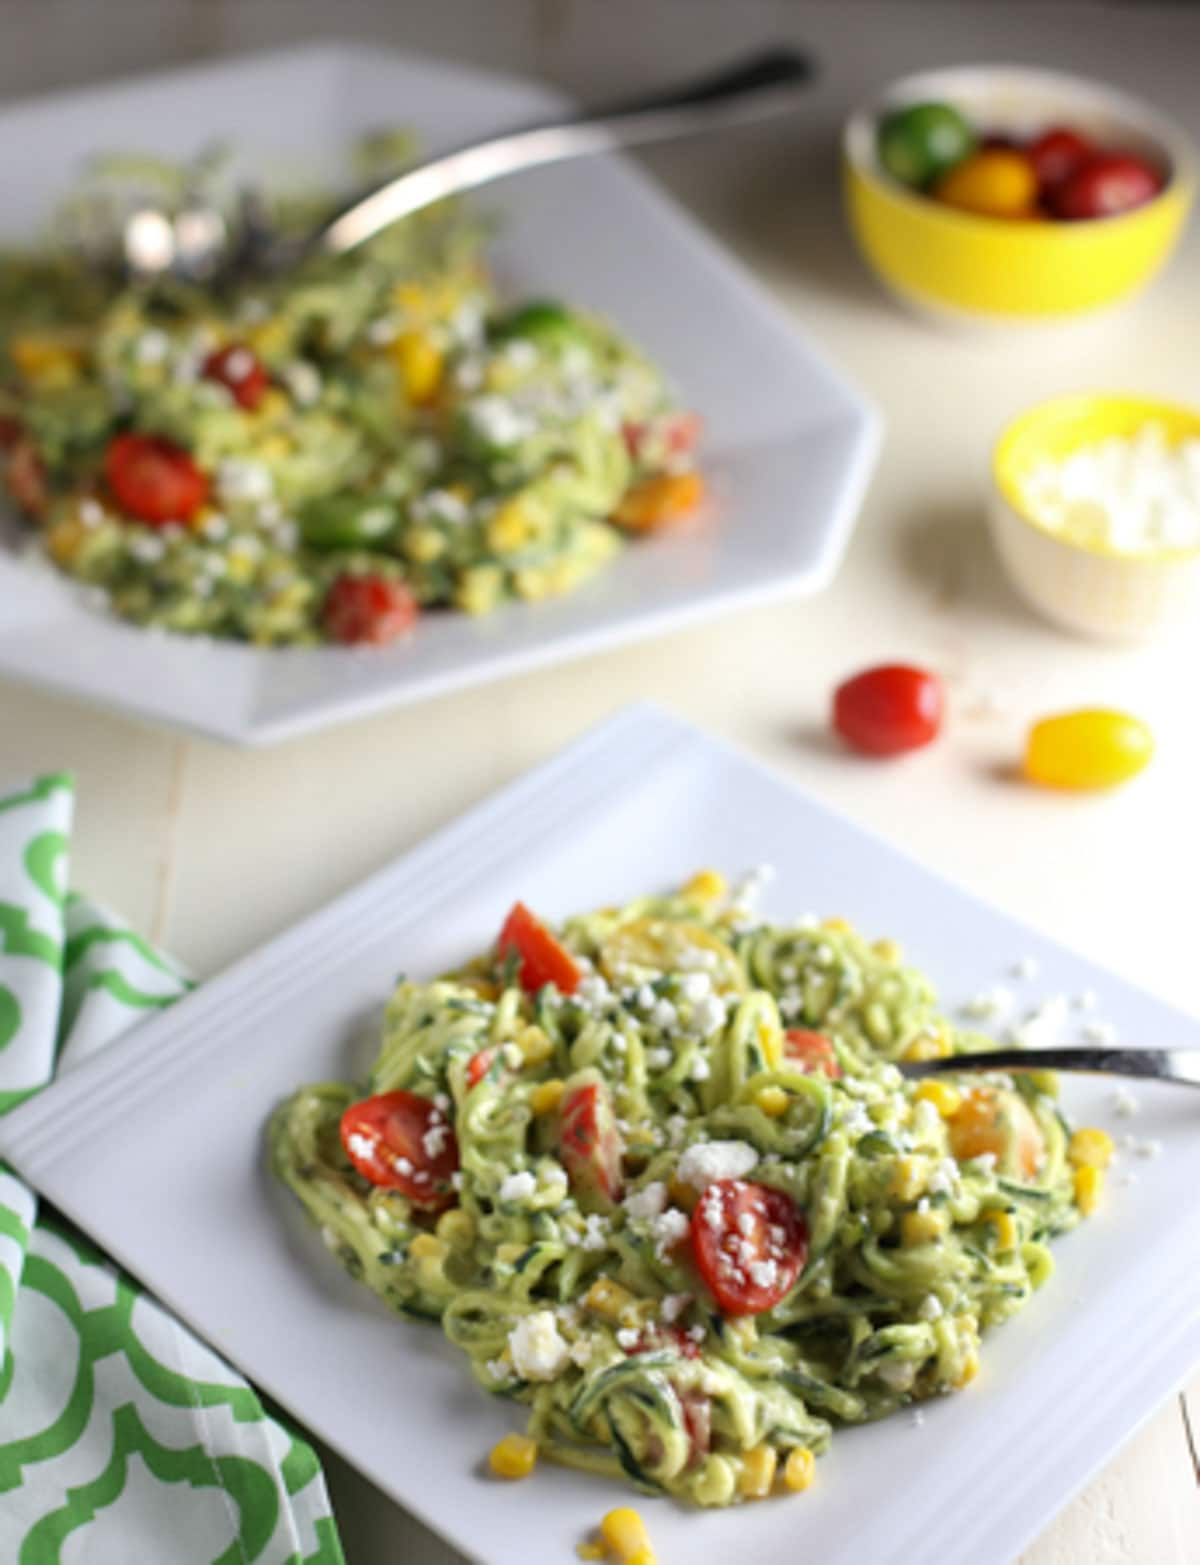 Zucchini Noodle Salad with Tomatoes, Goat Cheese, Corn & Avocado Sauce   WorldofPastabilities.com   Healthy, fresh, and delicious noodles that will convince even the kids it is pasta! The avocado sauce is the star...perfect side for any grilled meats this spring and summer!